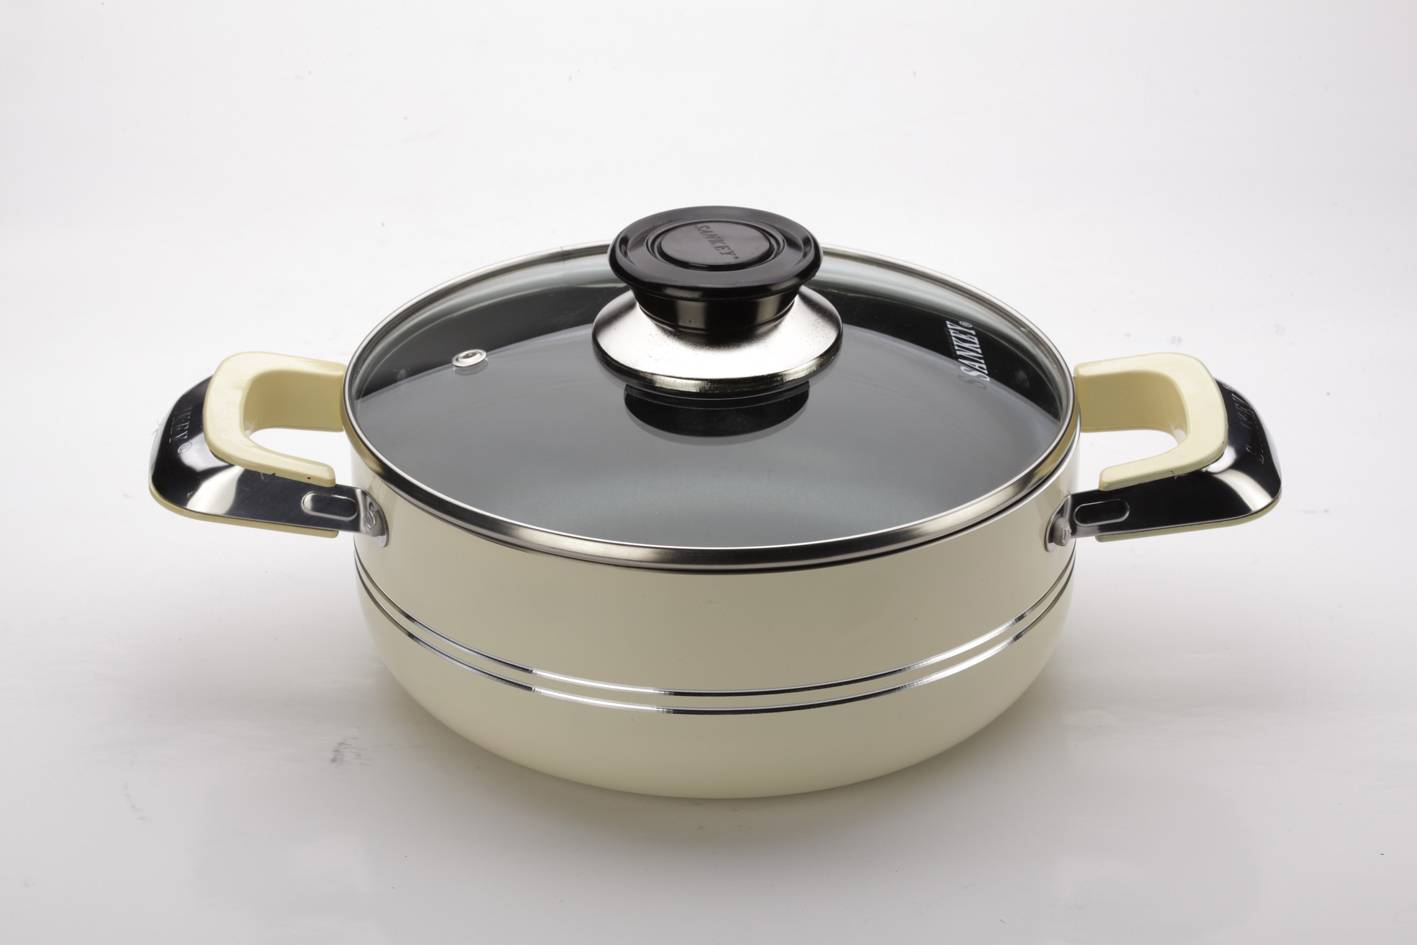 aluminum cookware/dhtch oven